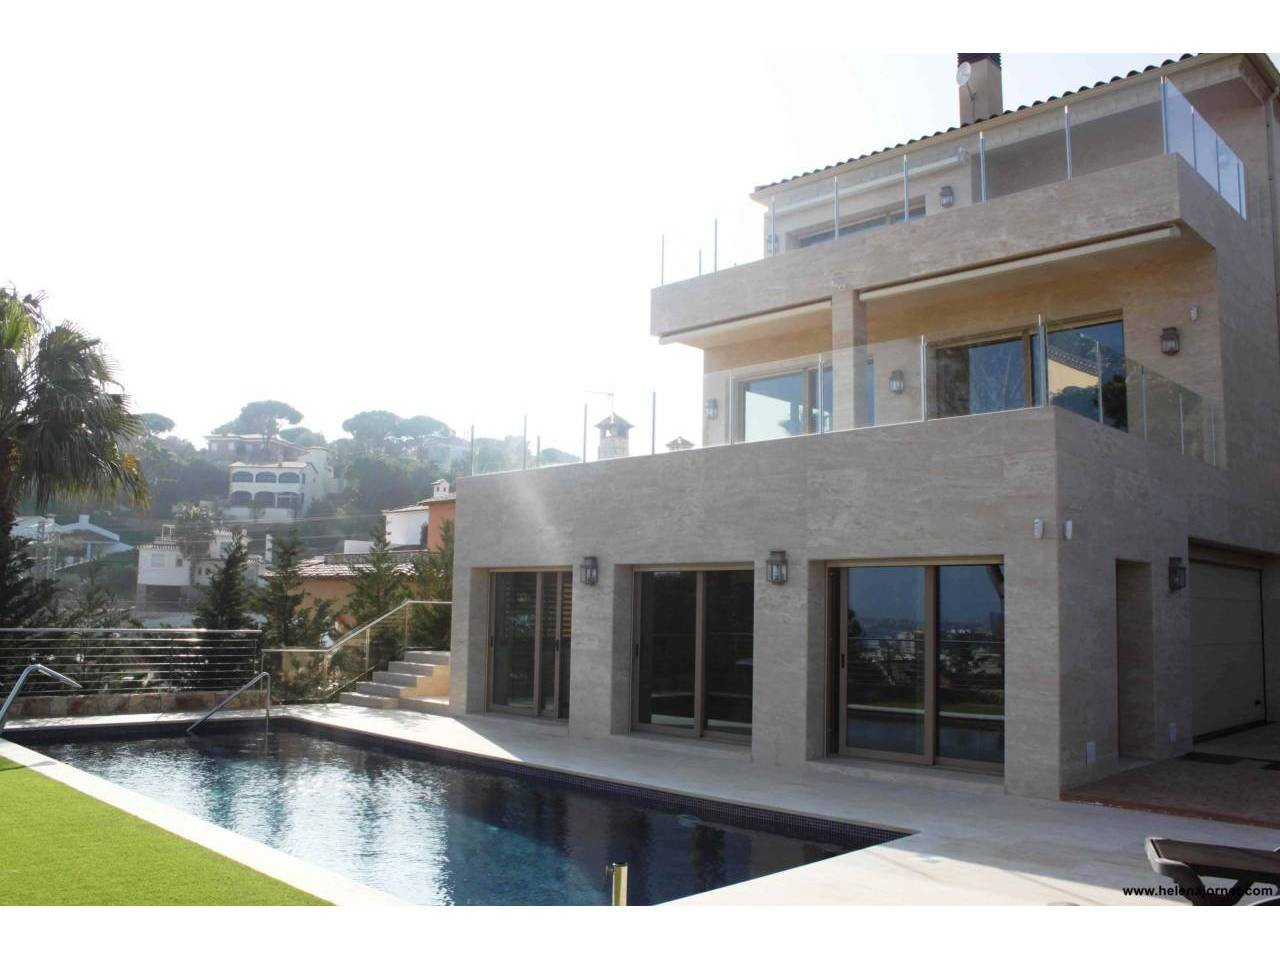 Wonderful luxury house with outdoor and indoor swimming pools and two large terraces with views - 938